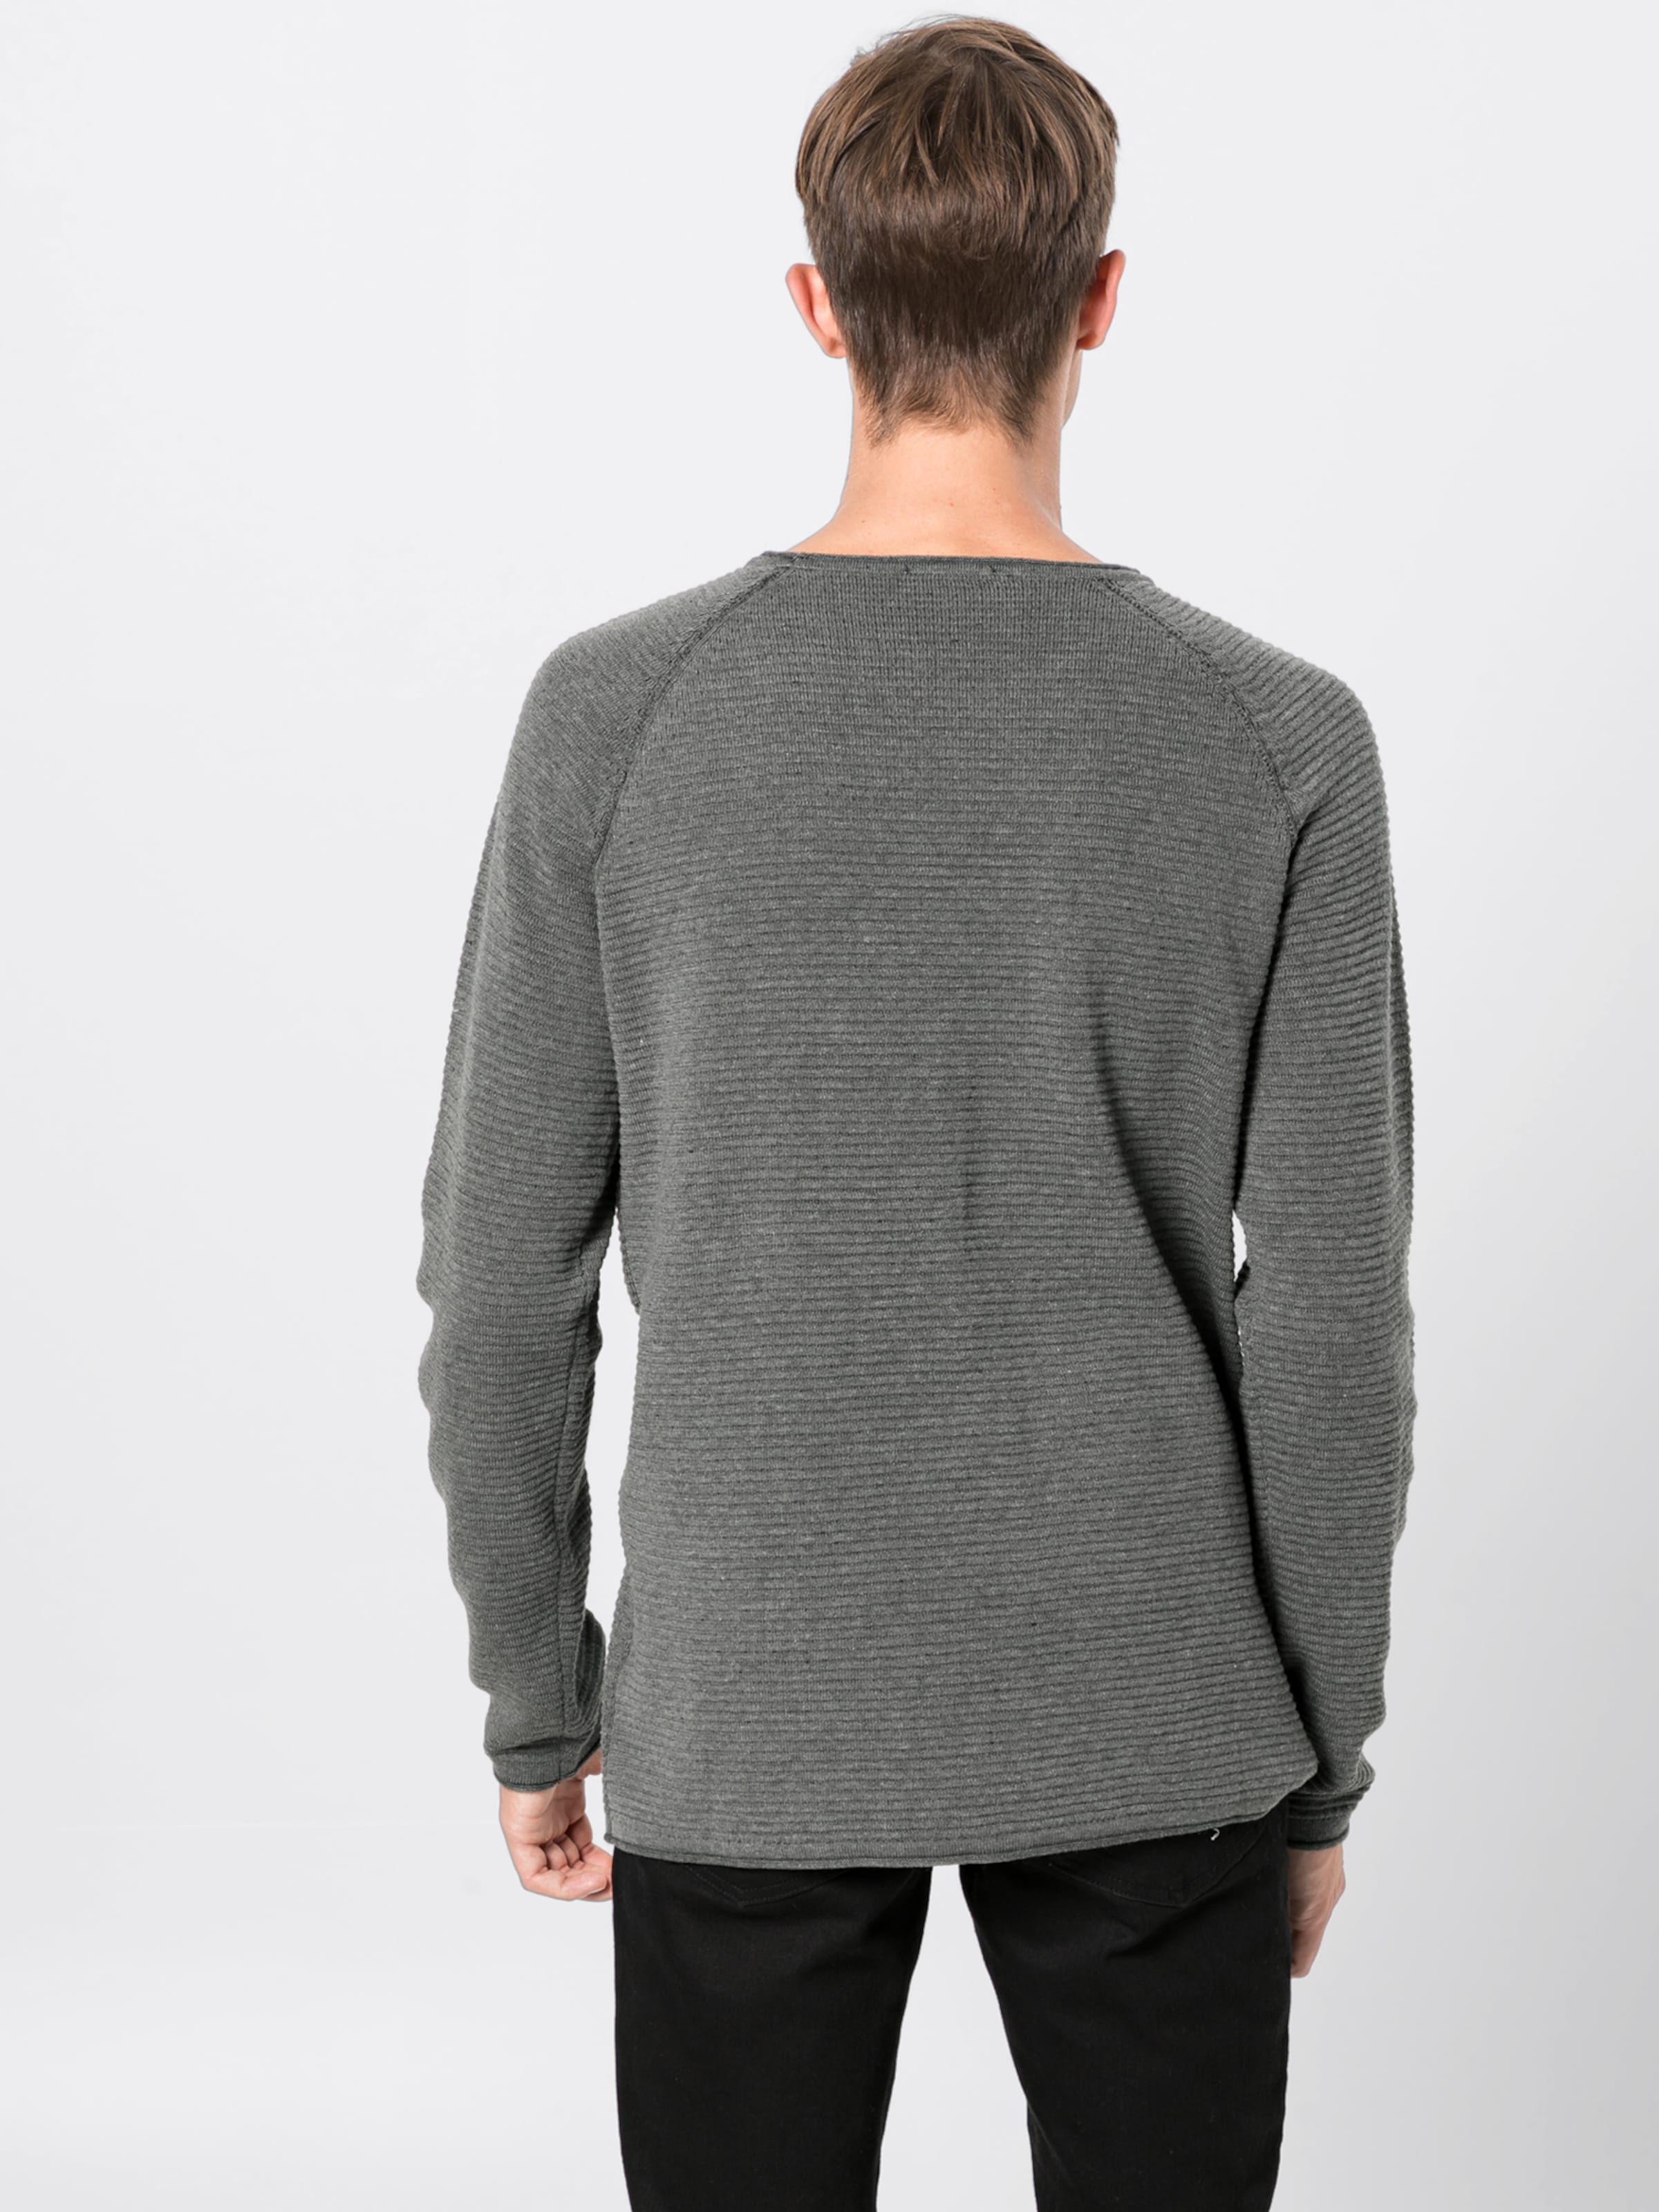 2tone' En Gris 'cn Pull Chiné Review over fgy7bY6